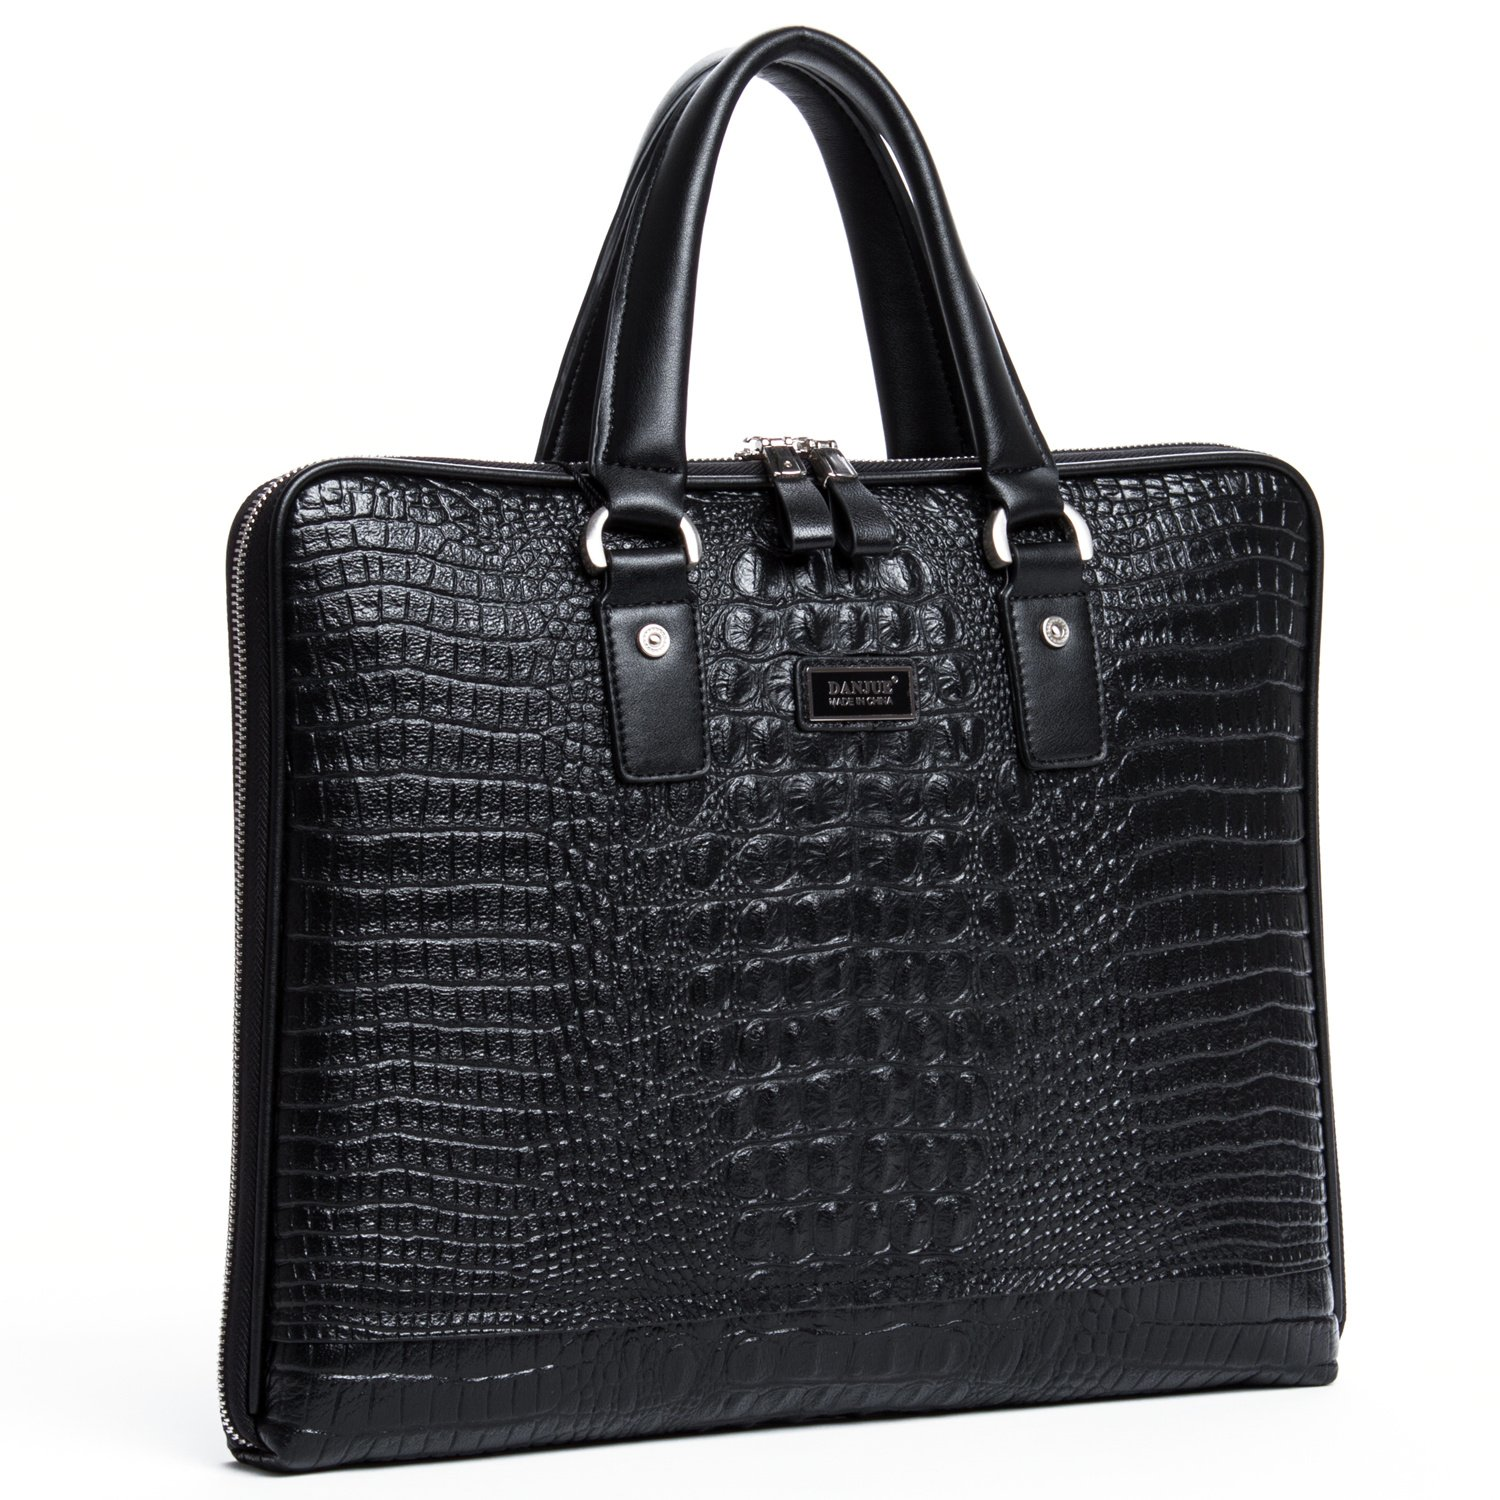 DANJUE Briefcase Bags for Men Crocodile Genuine Leather Business Handbag Office Shoulder Messenger Satchel Bag 8039-1-2